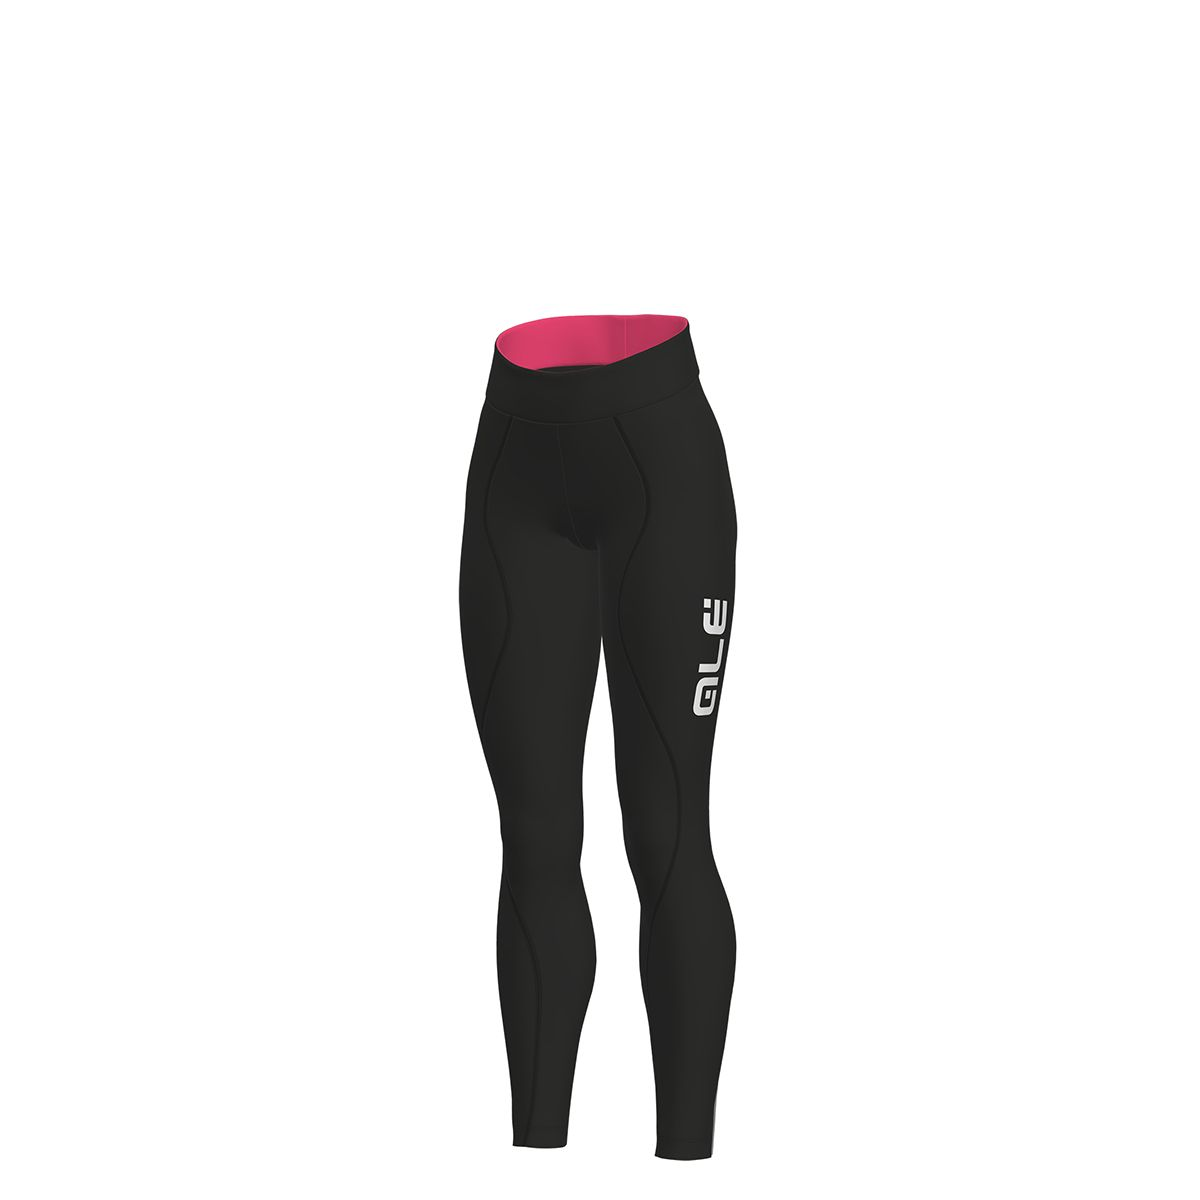 ALÉ SOLID Winter Tights for women | Bukser